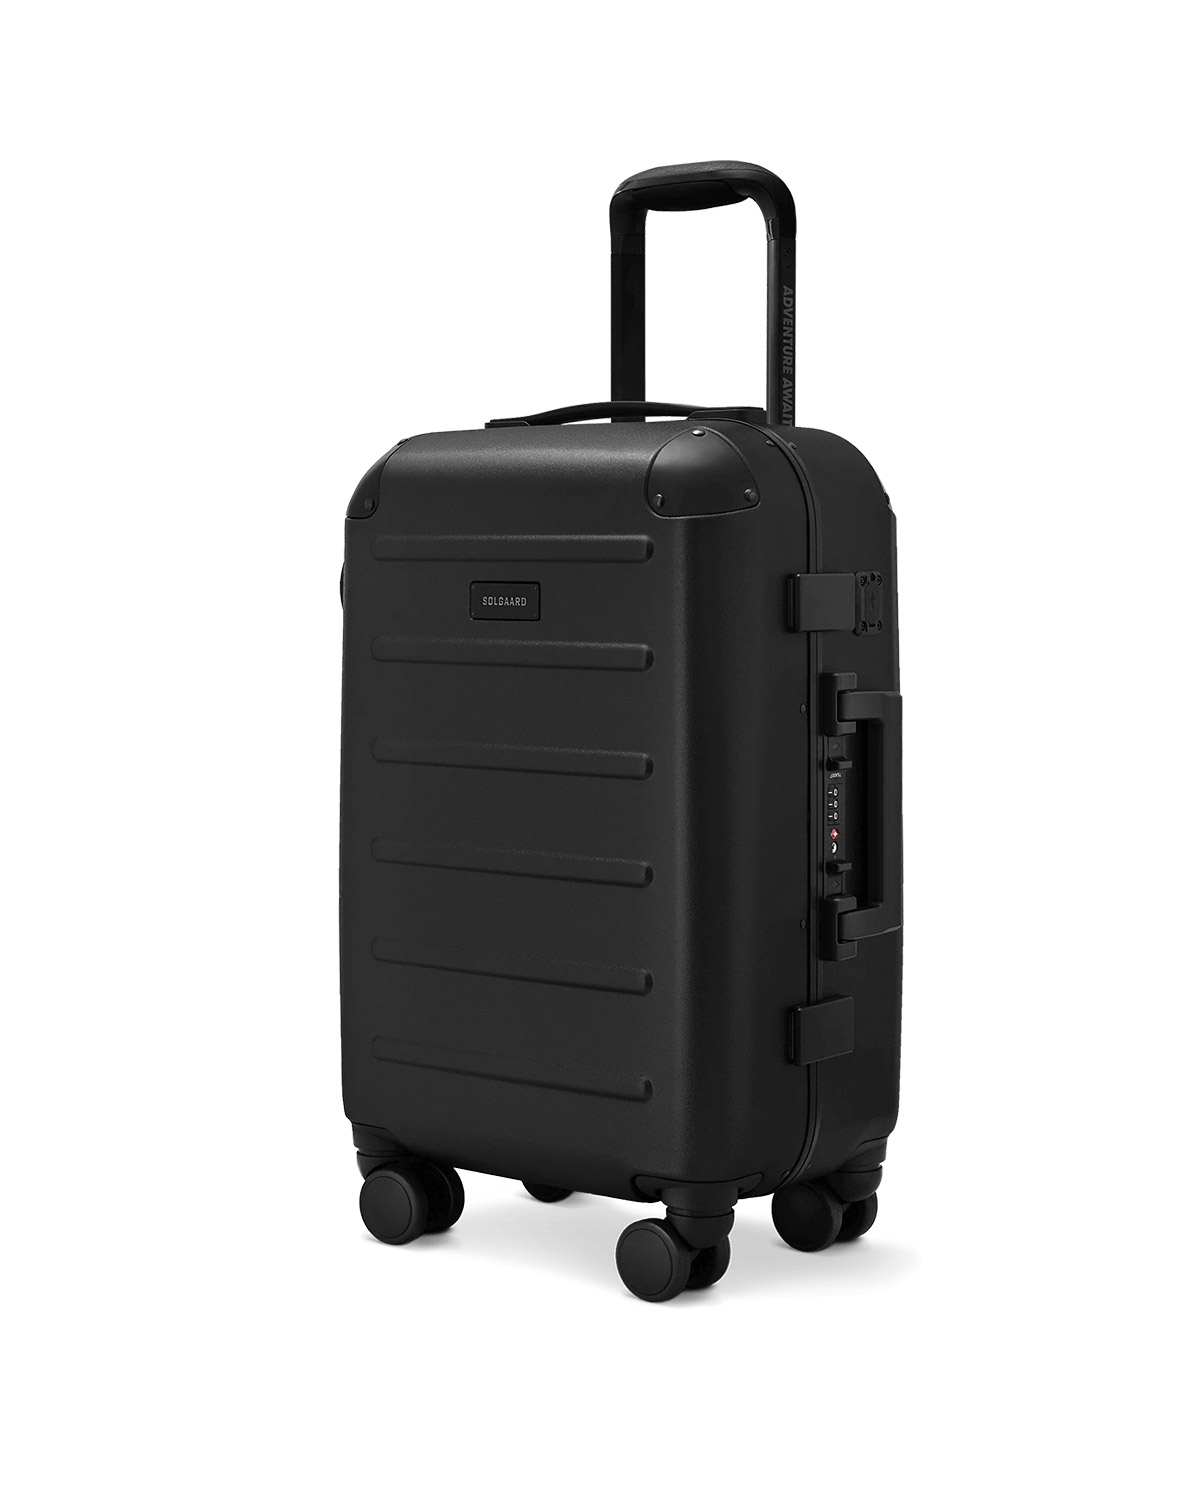 The Carry-On Closet 2.0 - Baltic Black